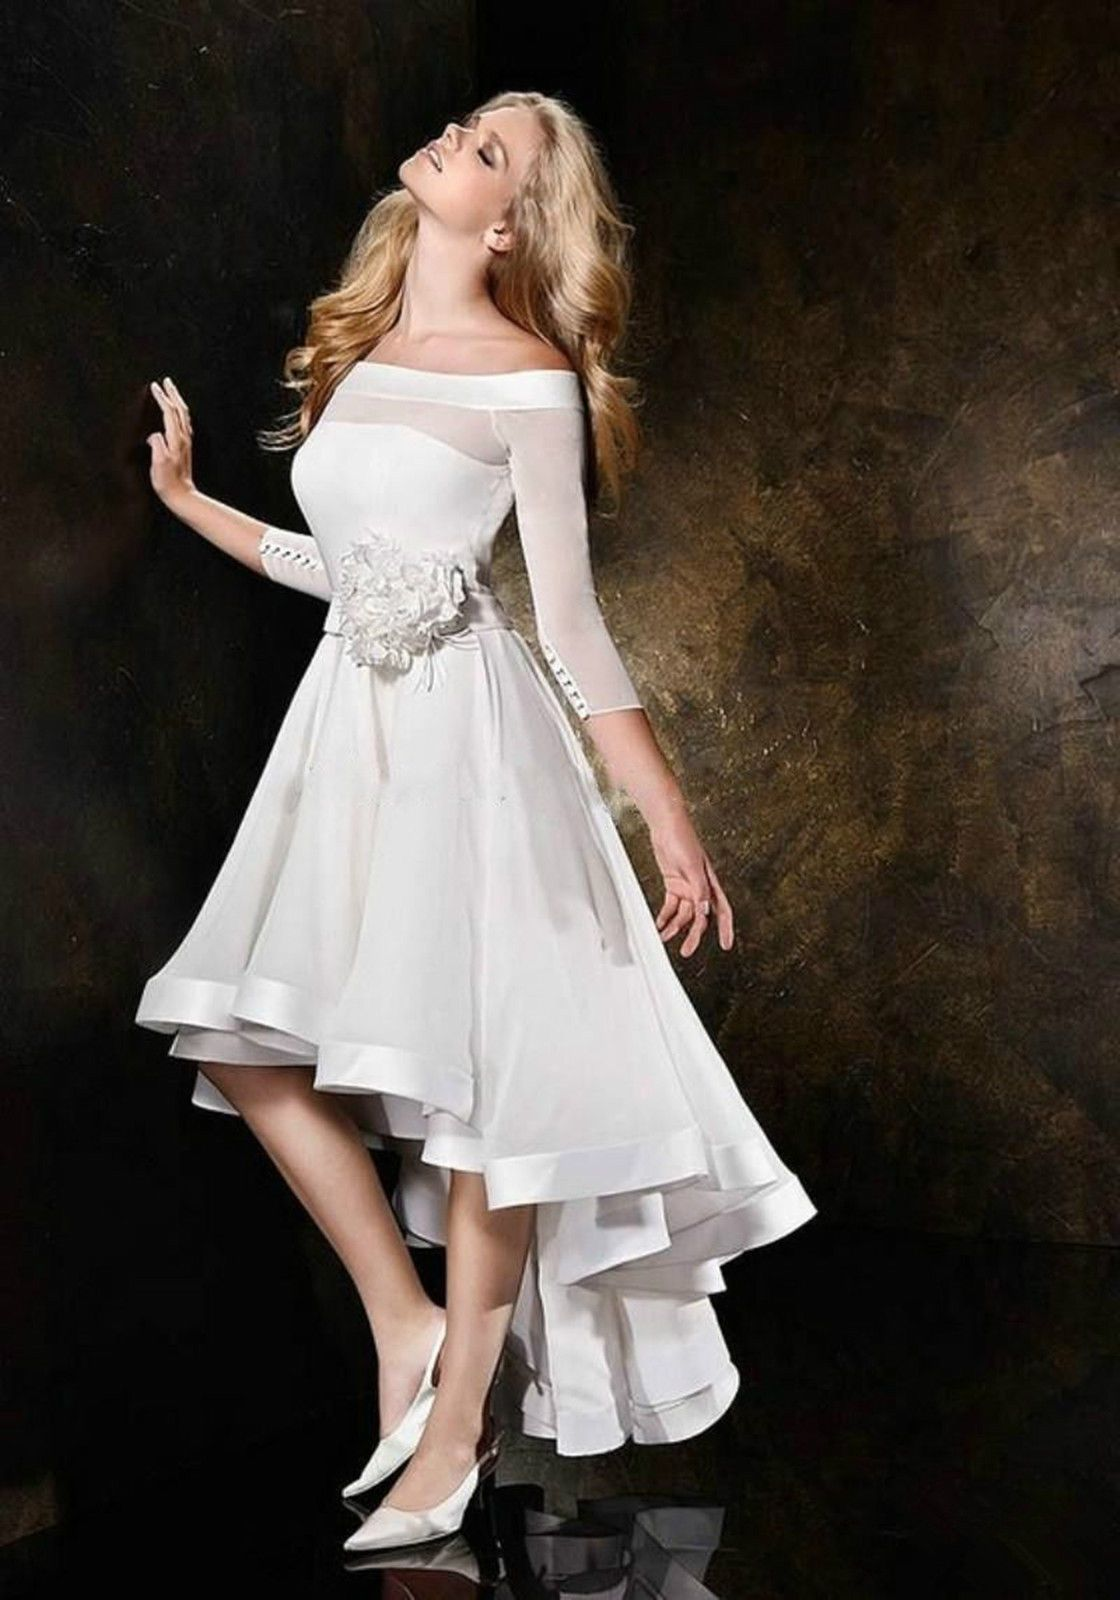 Cheap wedding dresses short front long back  vestidinho bom  Sewing Inspiration  Pinterest  Wedding dress